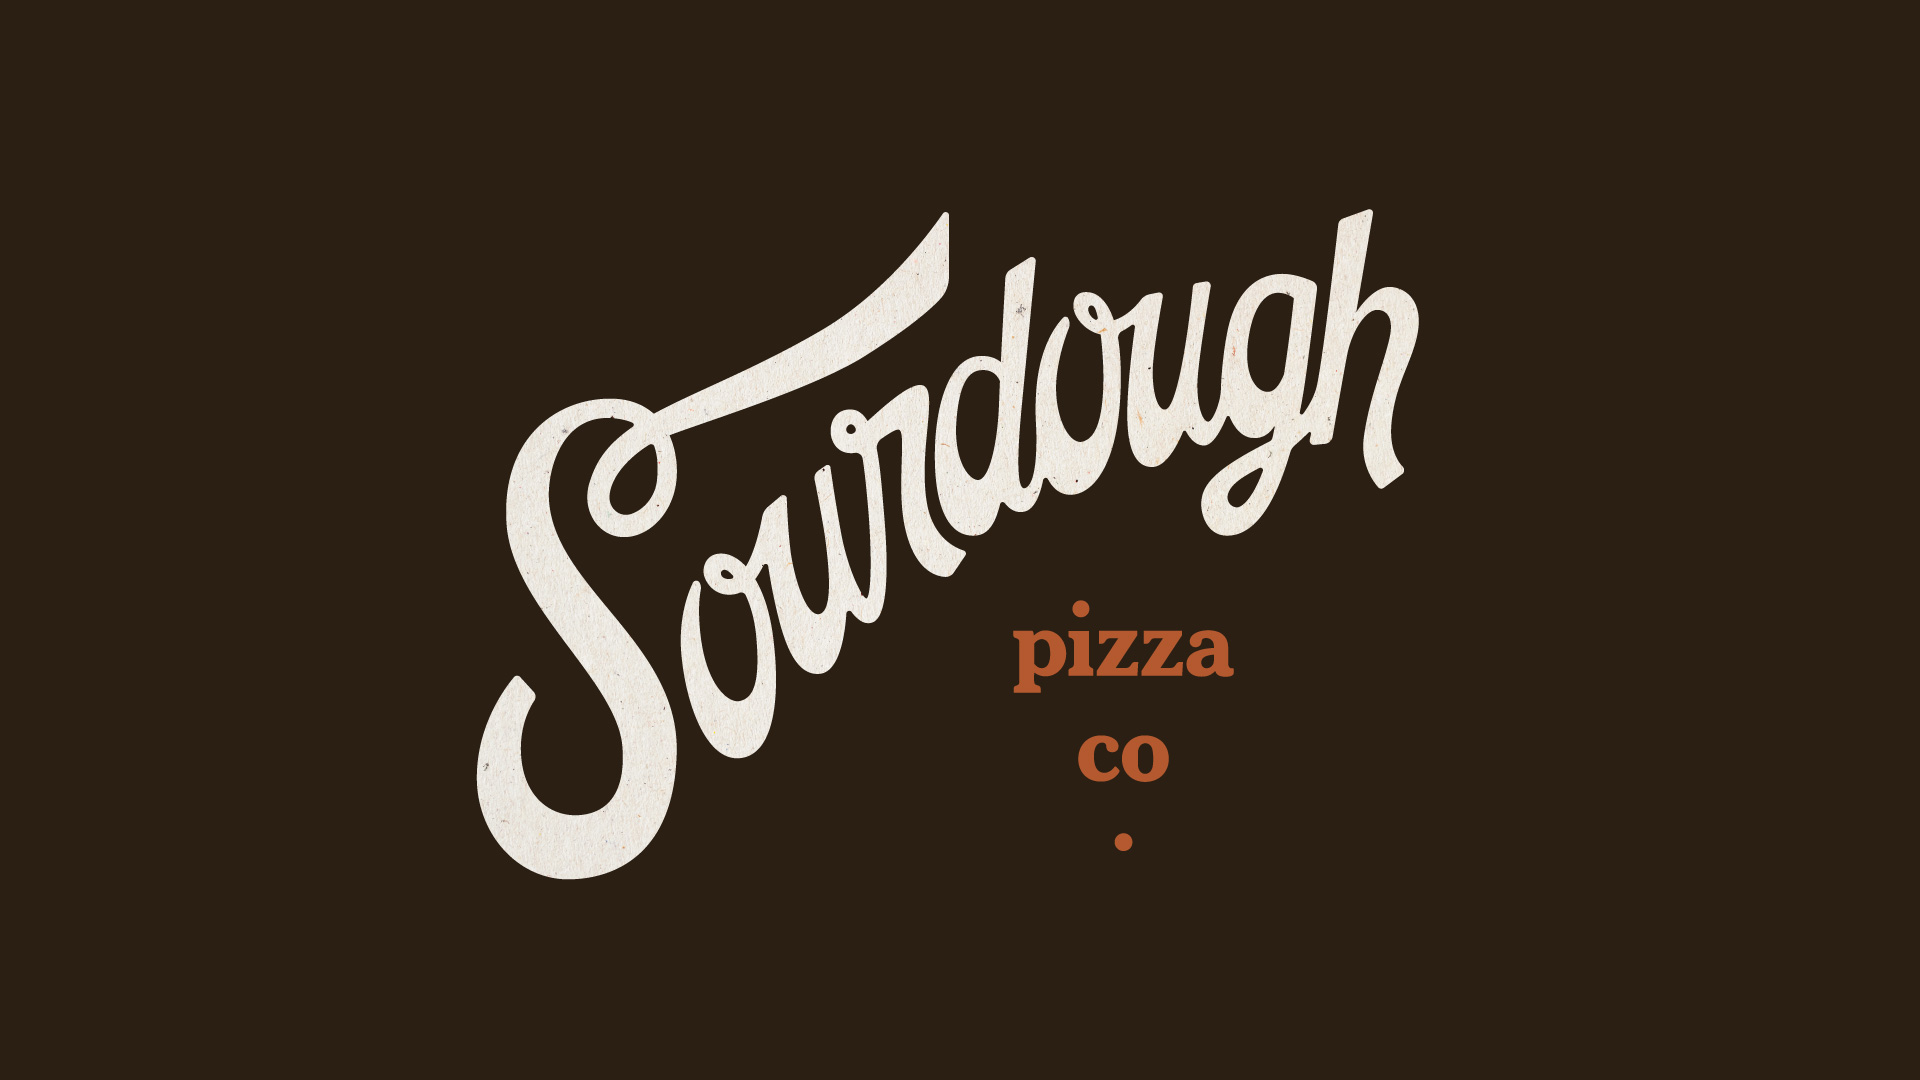 Sourdough Pizza Co